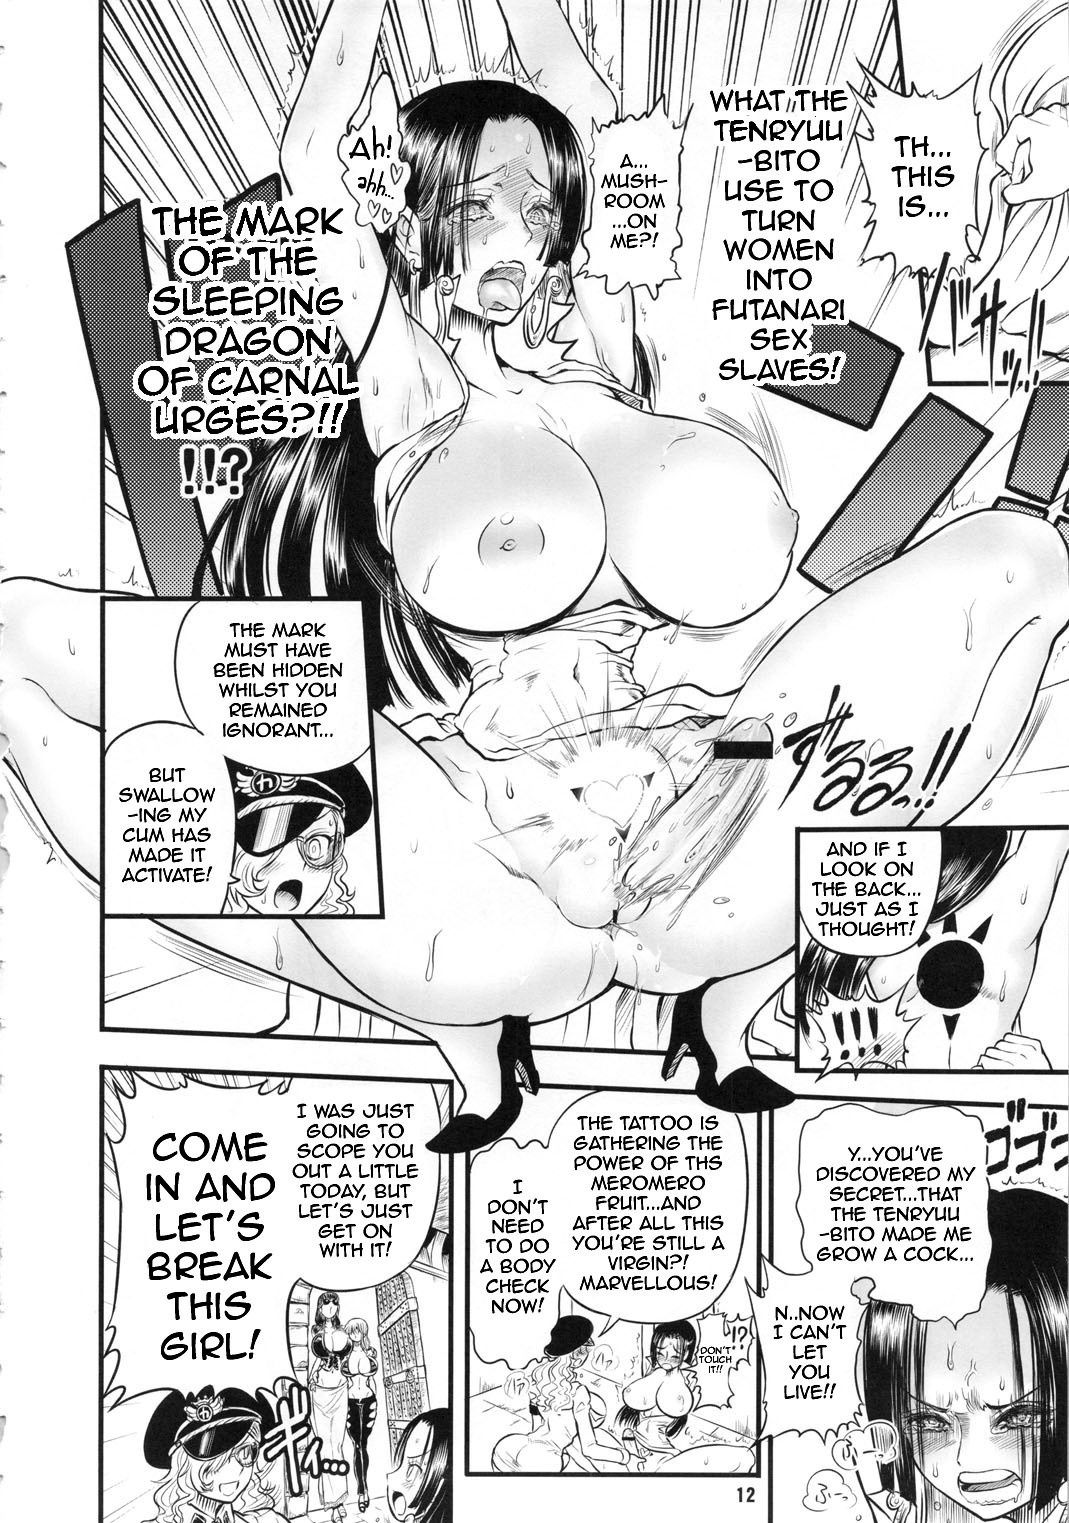 Bloom pirate hooker queen hentai manga picture 06